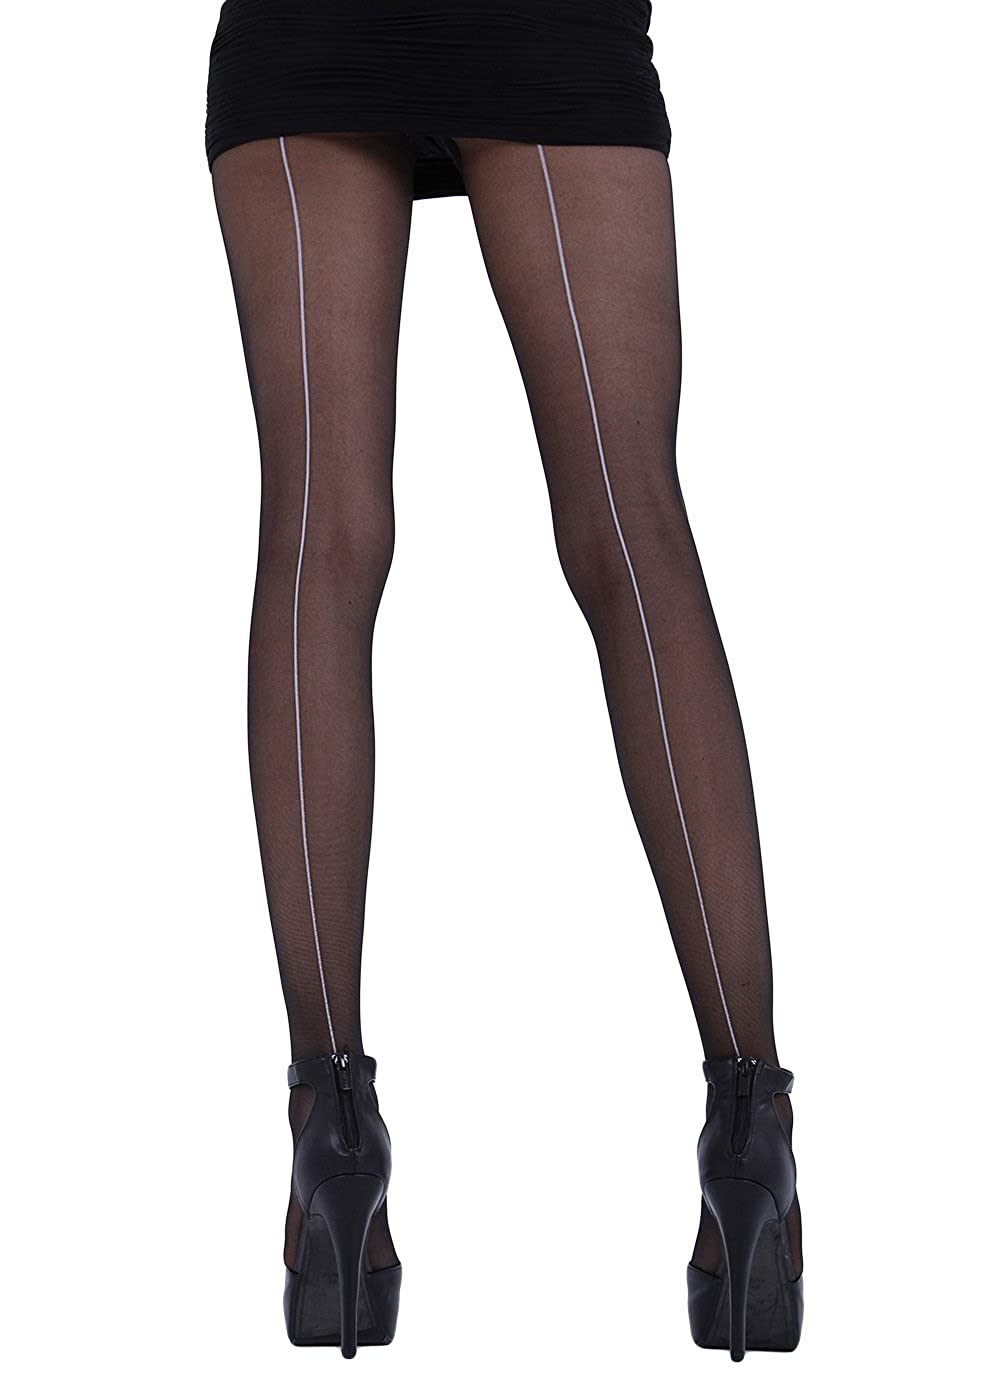 fa6c52f90 Cecilia de Rafael Hyde Park Back Seam Tights XL Available  Amazon.co.uk   Clothing